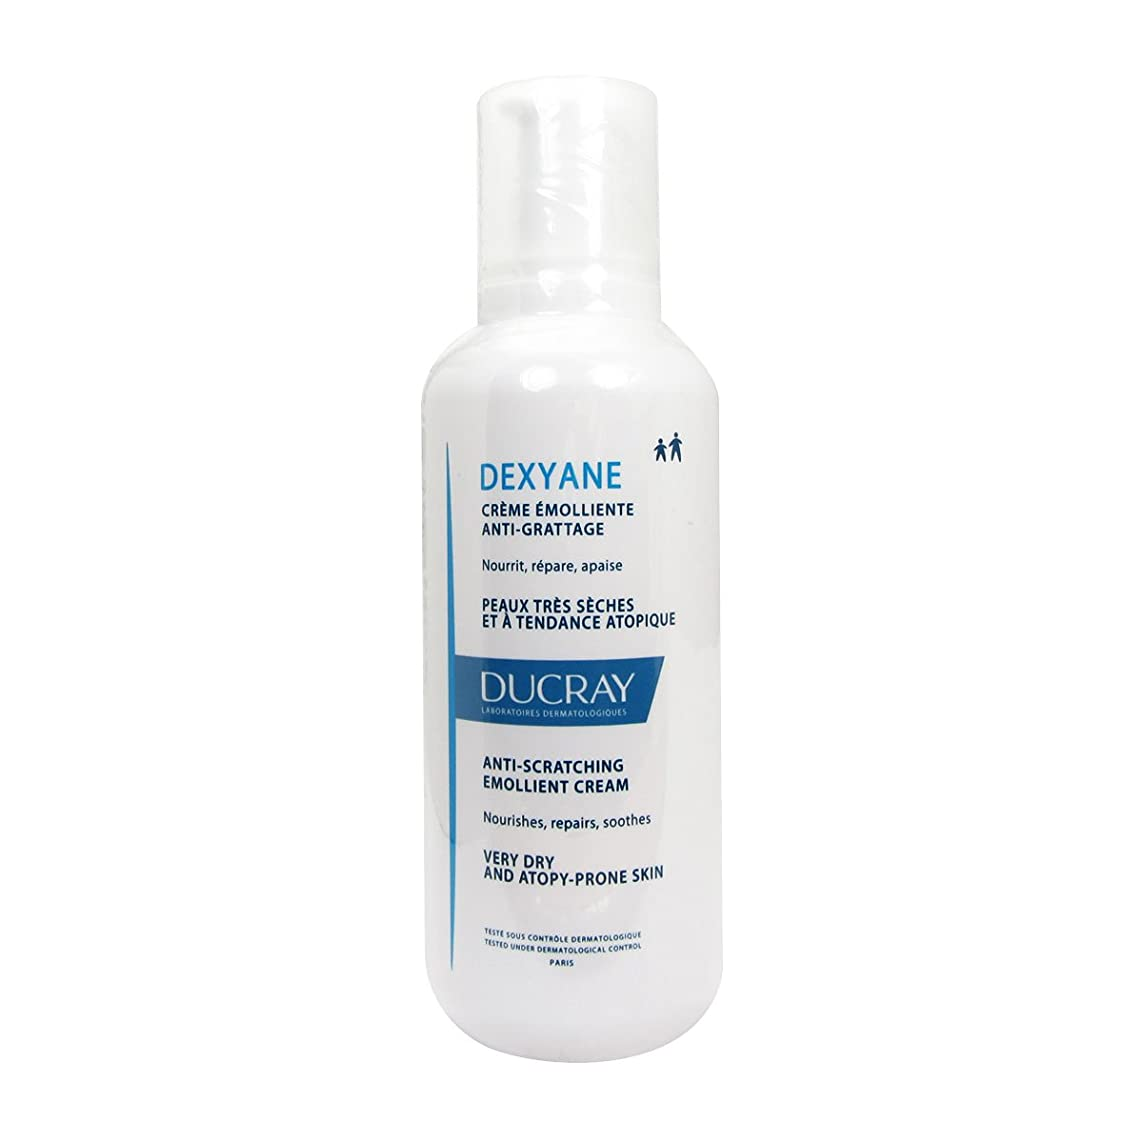 陽気な肉腫彼自身Ducray Dexyane Anti-scratching Emollient Cream 400ml [並行輸入品]